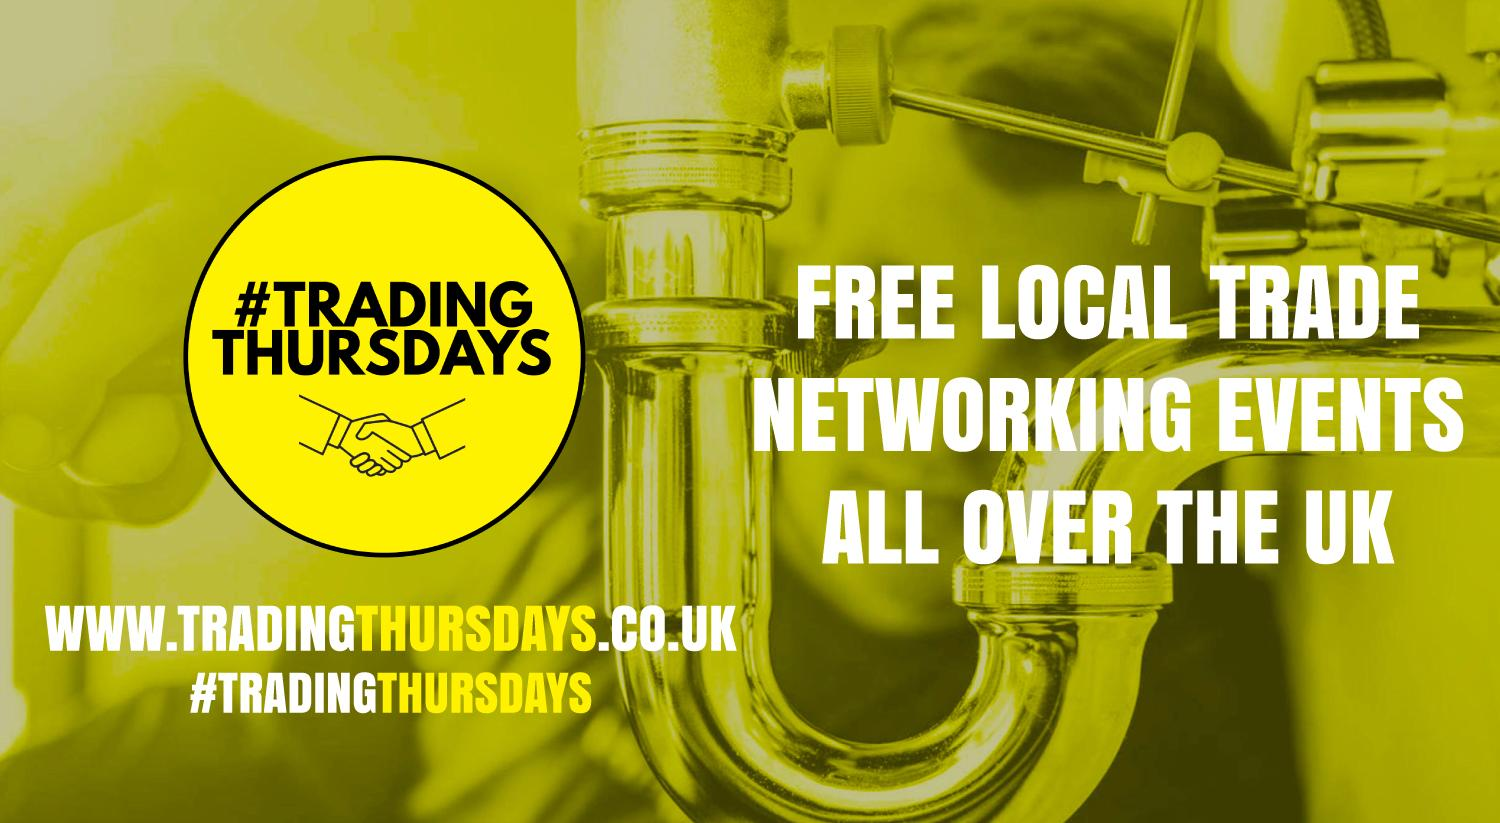 Trading Thursdays! Free networking event for traders in Warwick